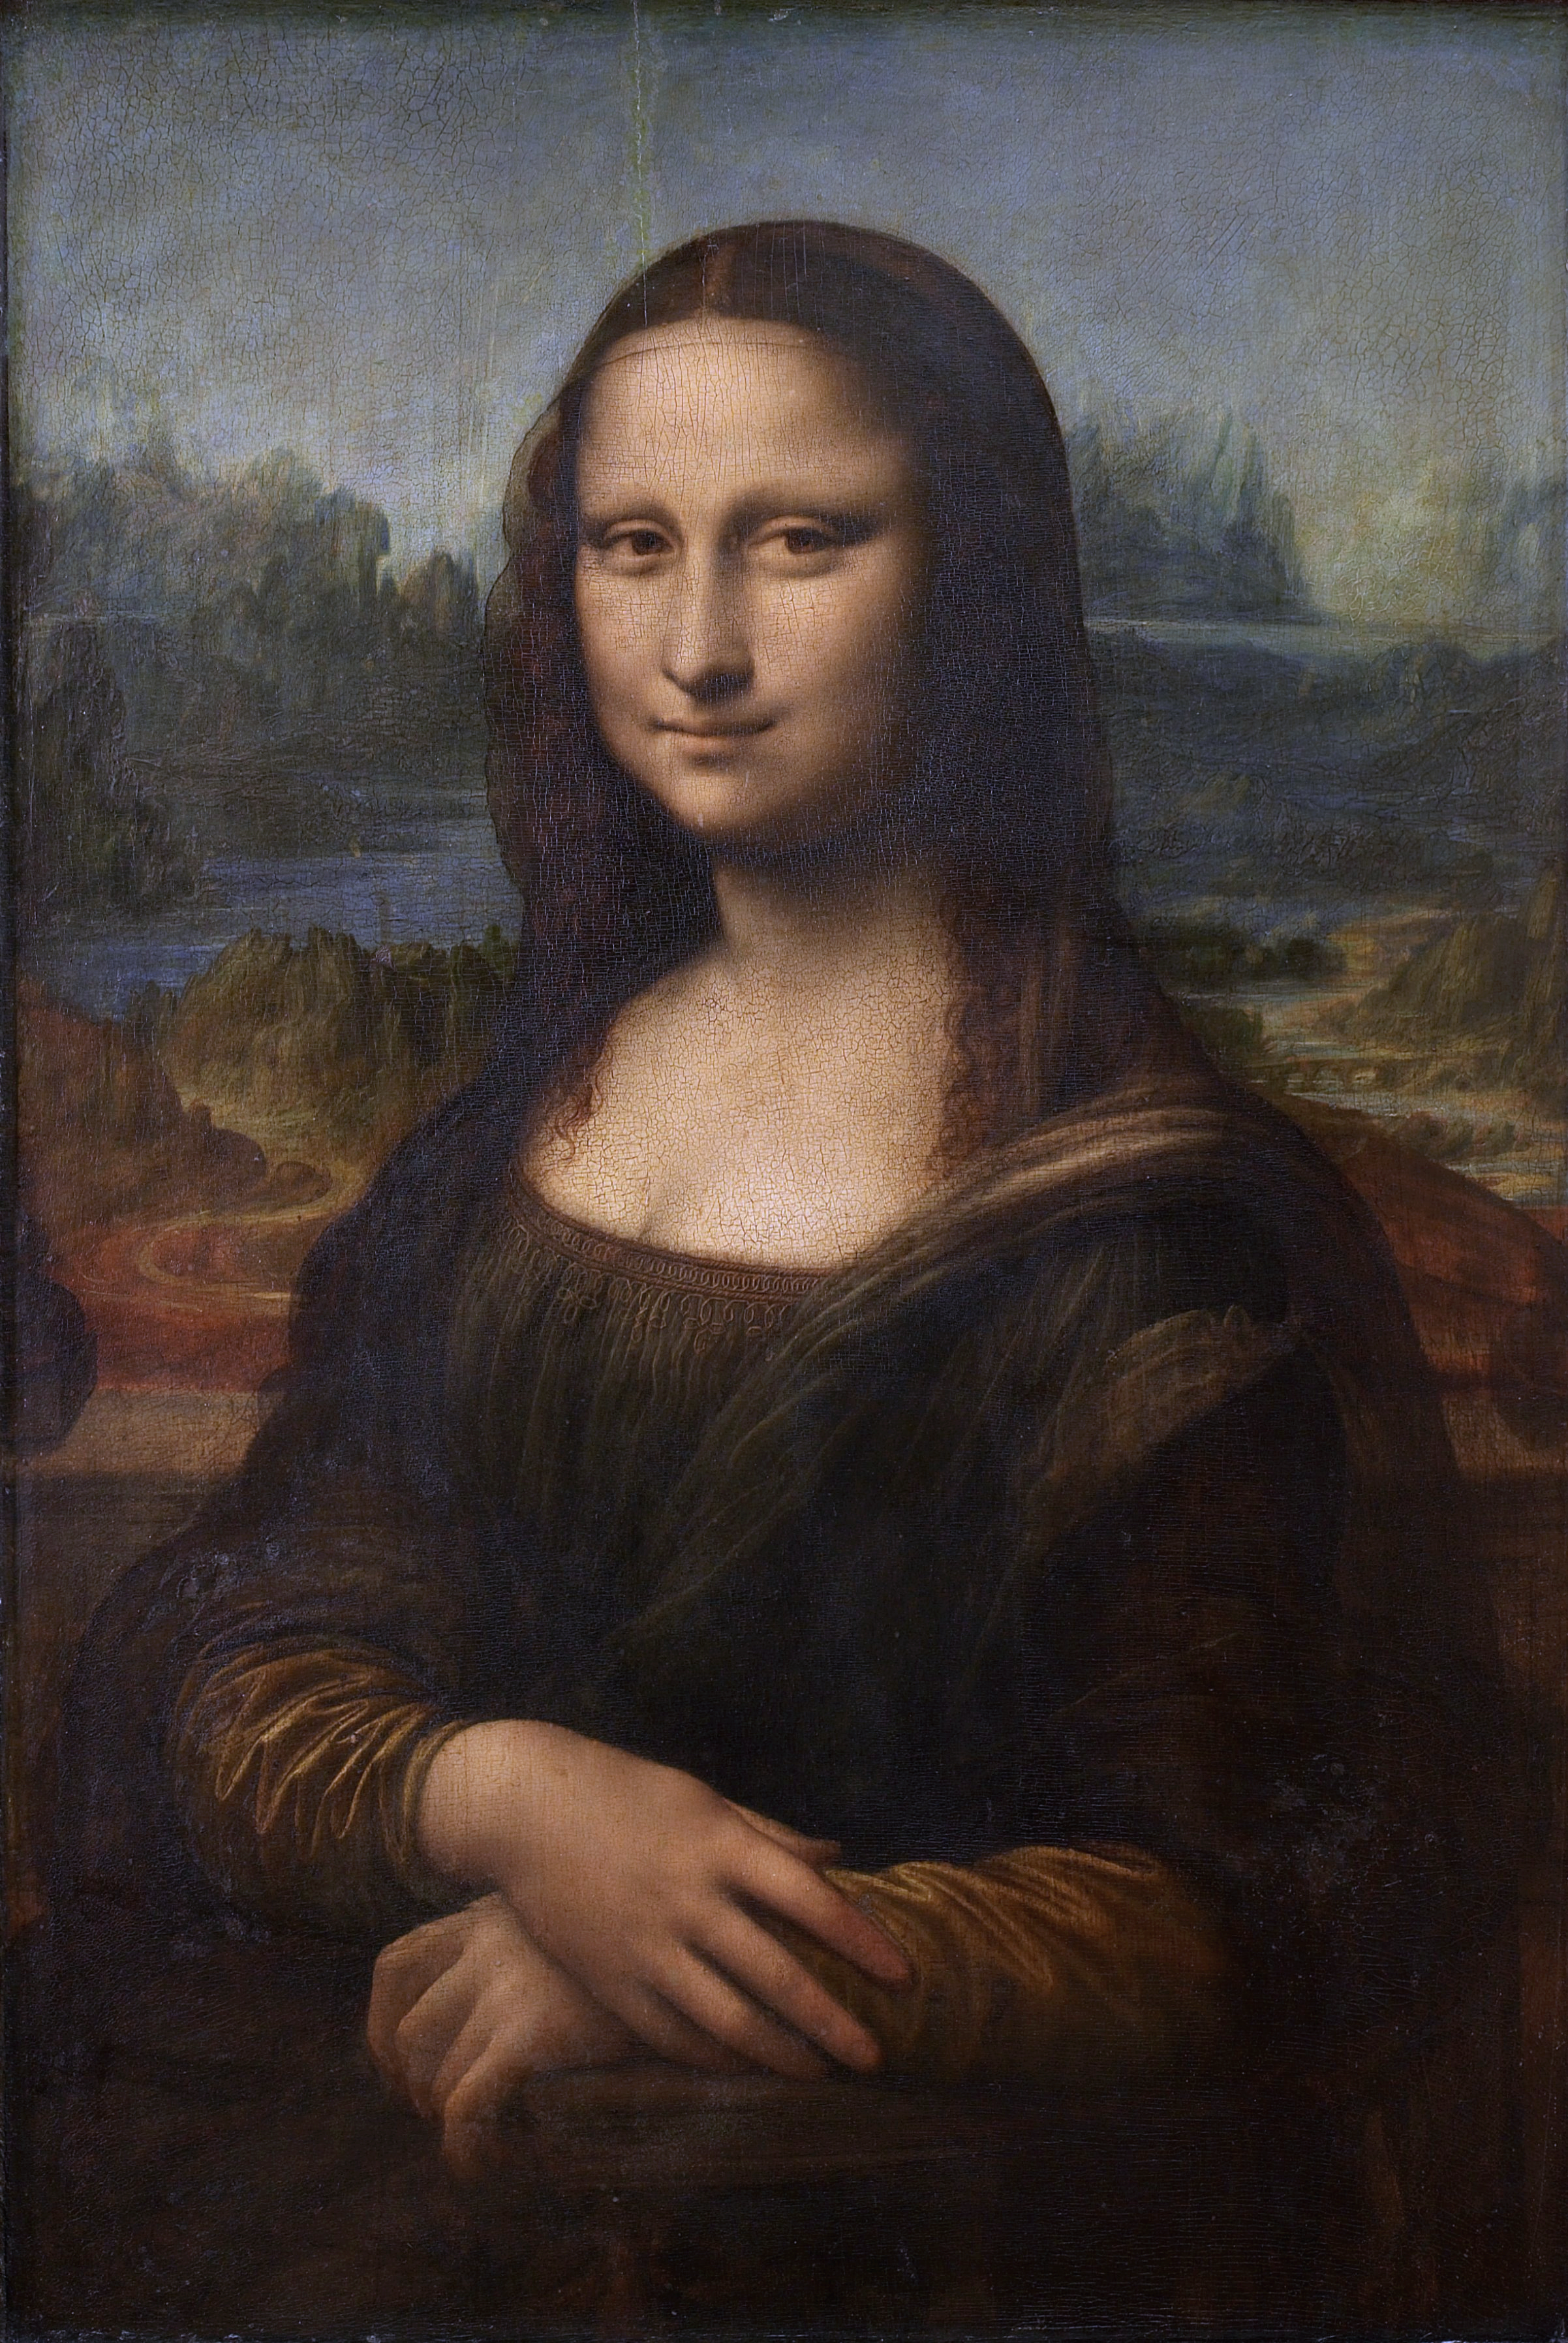 Til That The Mona Lisa Has No Eyebrows Or Eyelashes Todayilearned